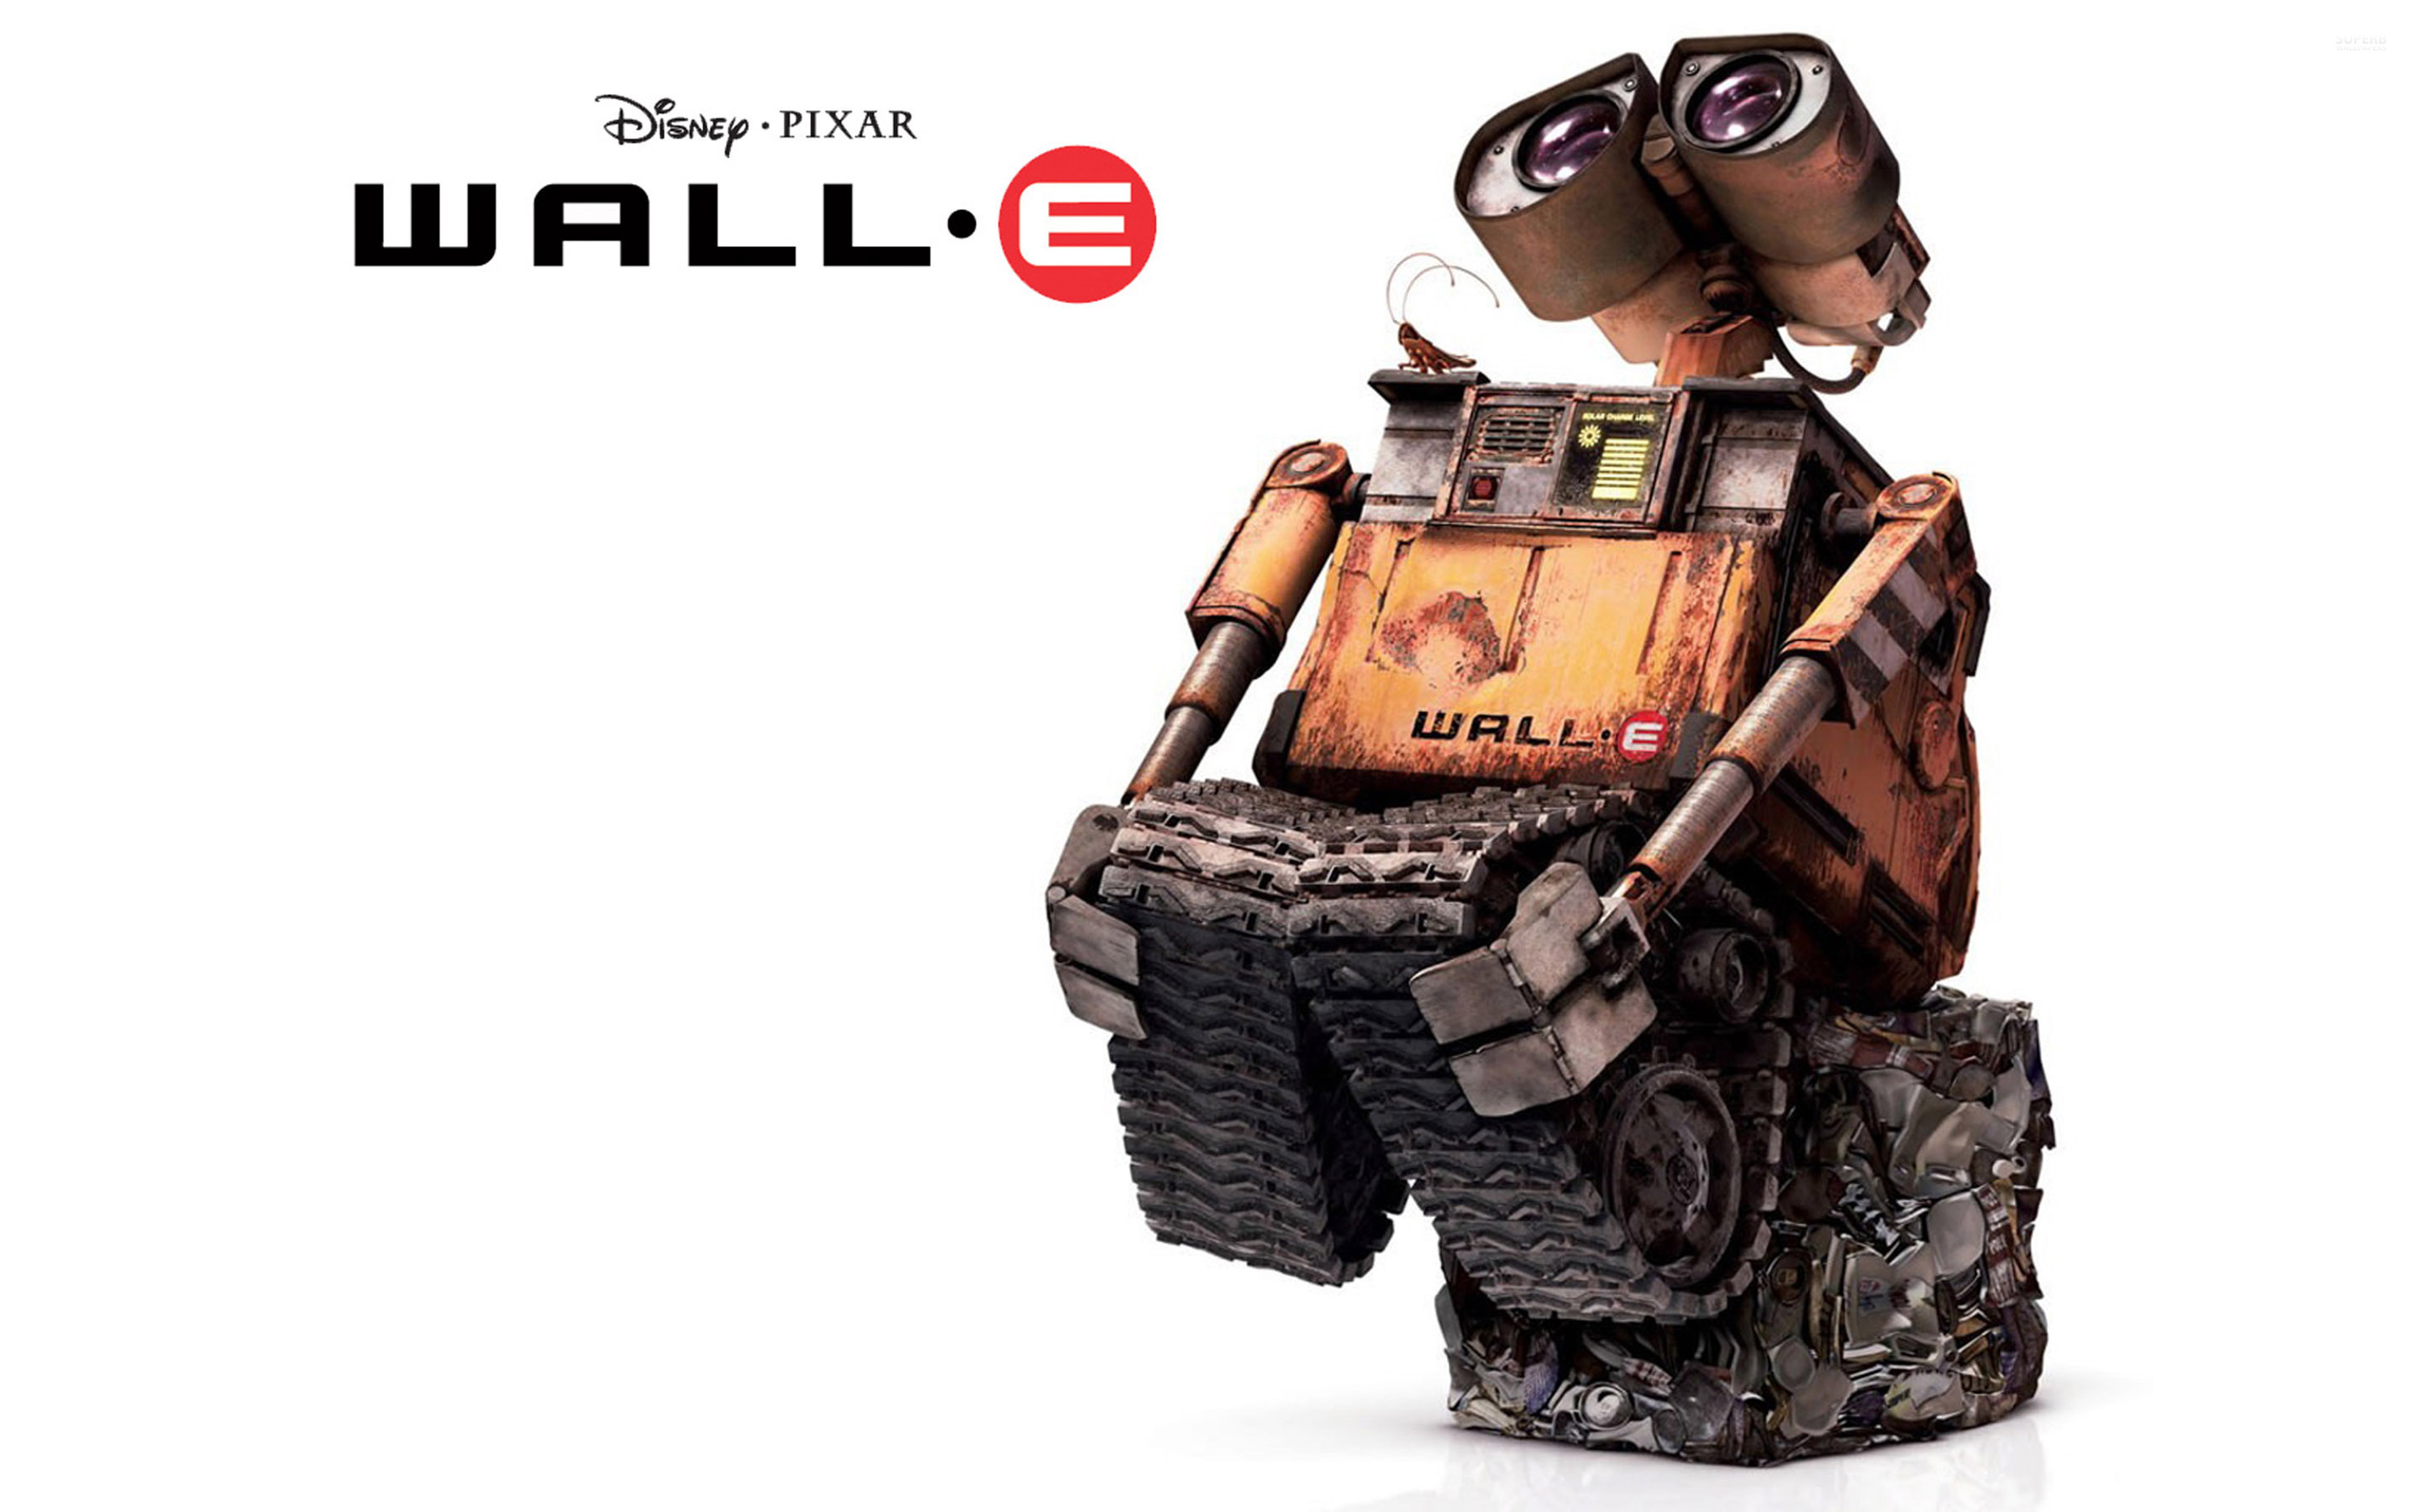 Cool Wallpapers For Phones 3d Walle Wallpaper 2880x1800 54760